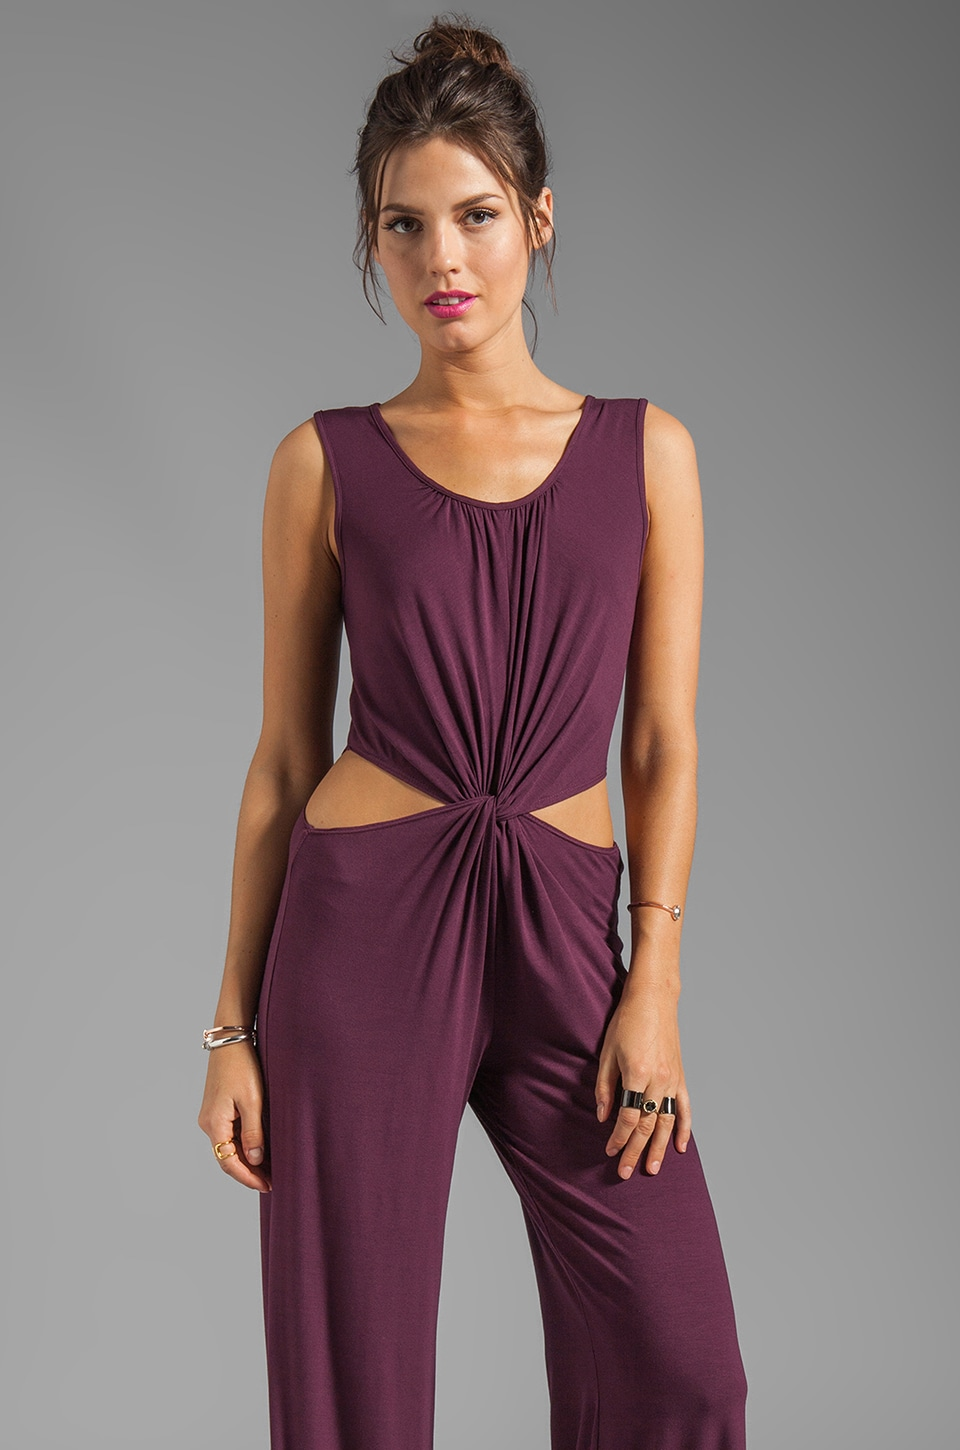 James & Joy Savannah Jumpsuit in Wine